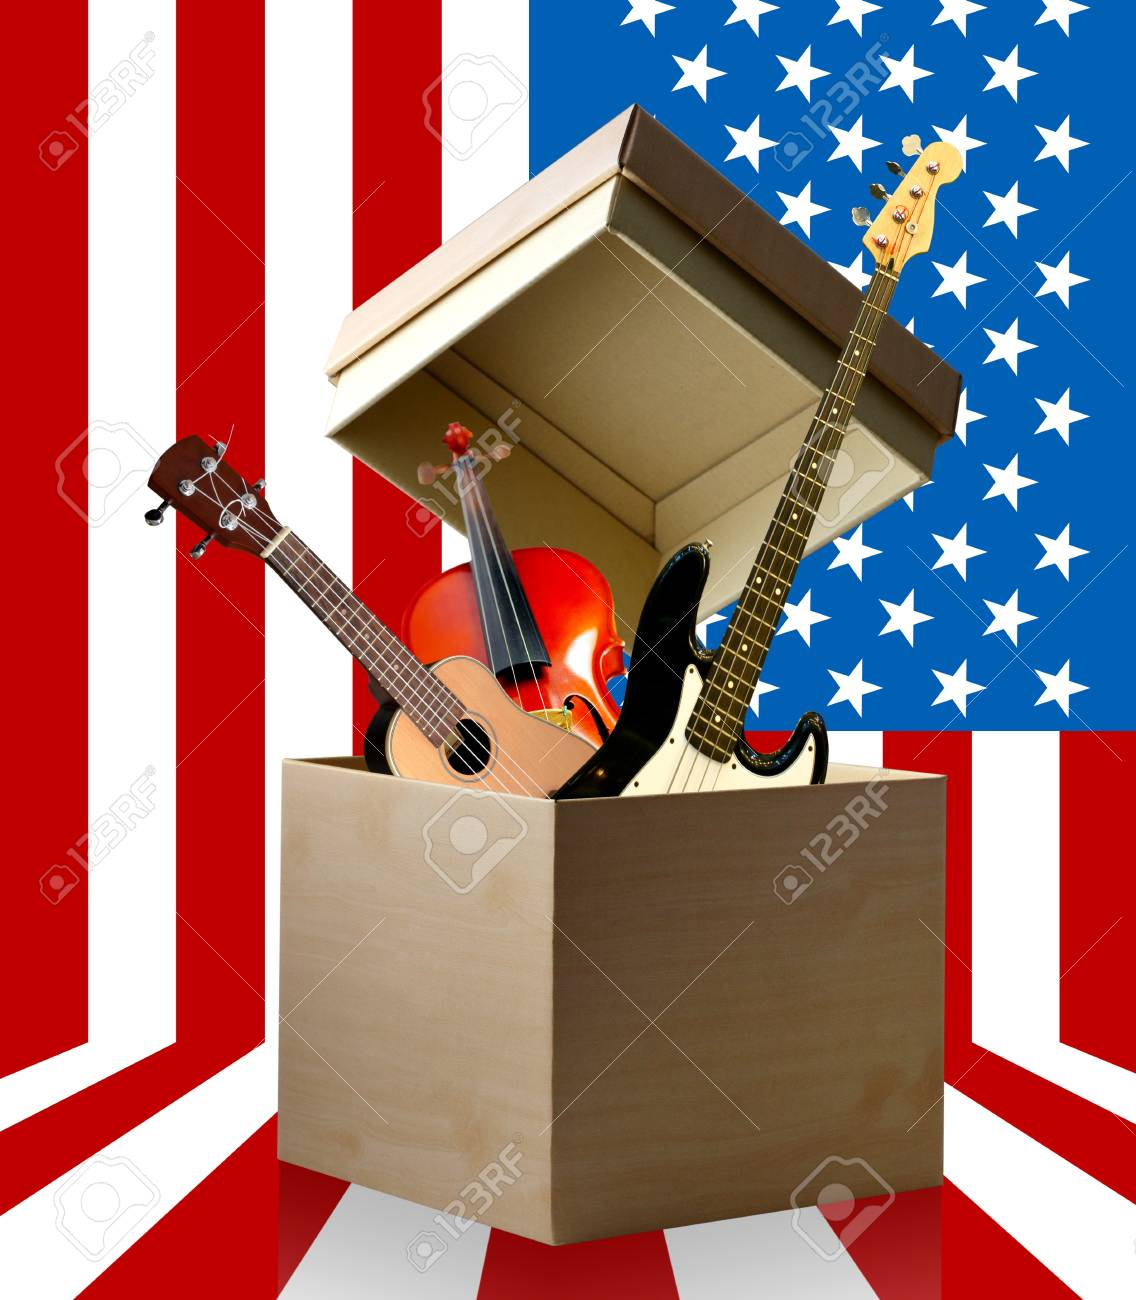 Celebrate with music, Independence day concept Stock Photo - 13348144